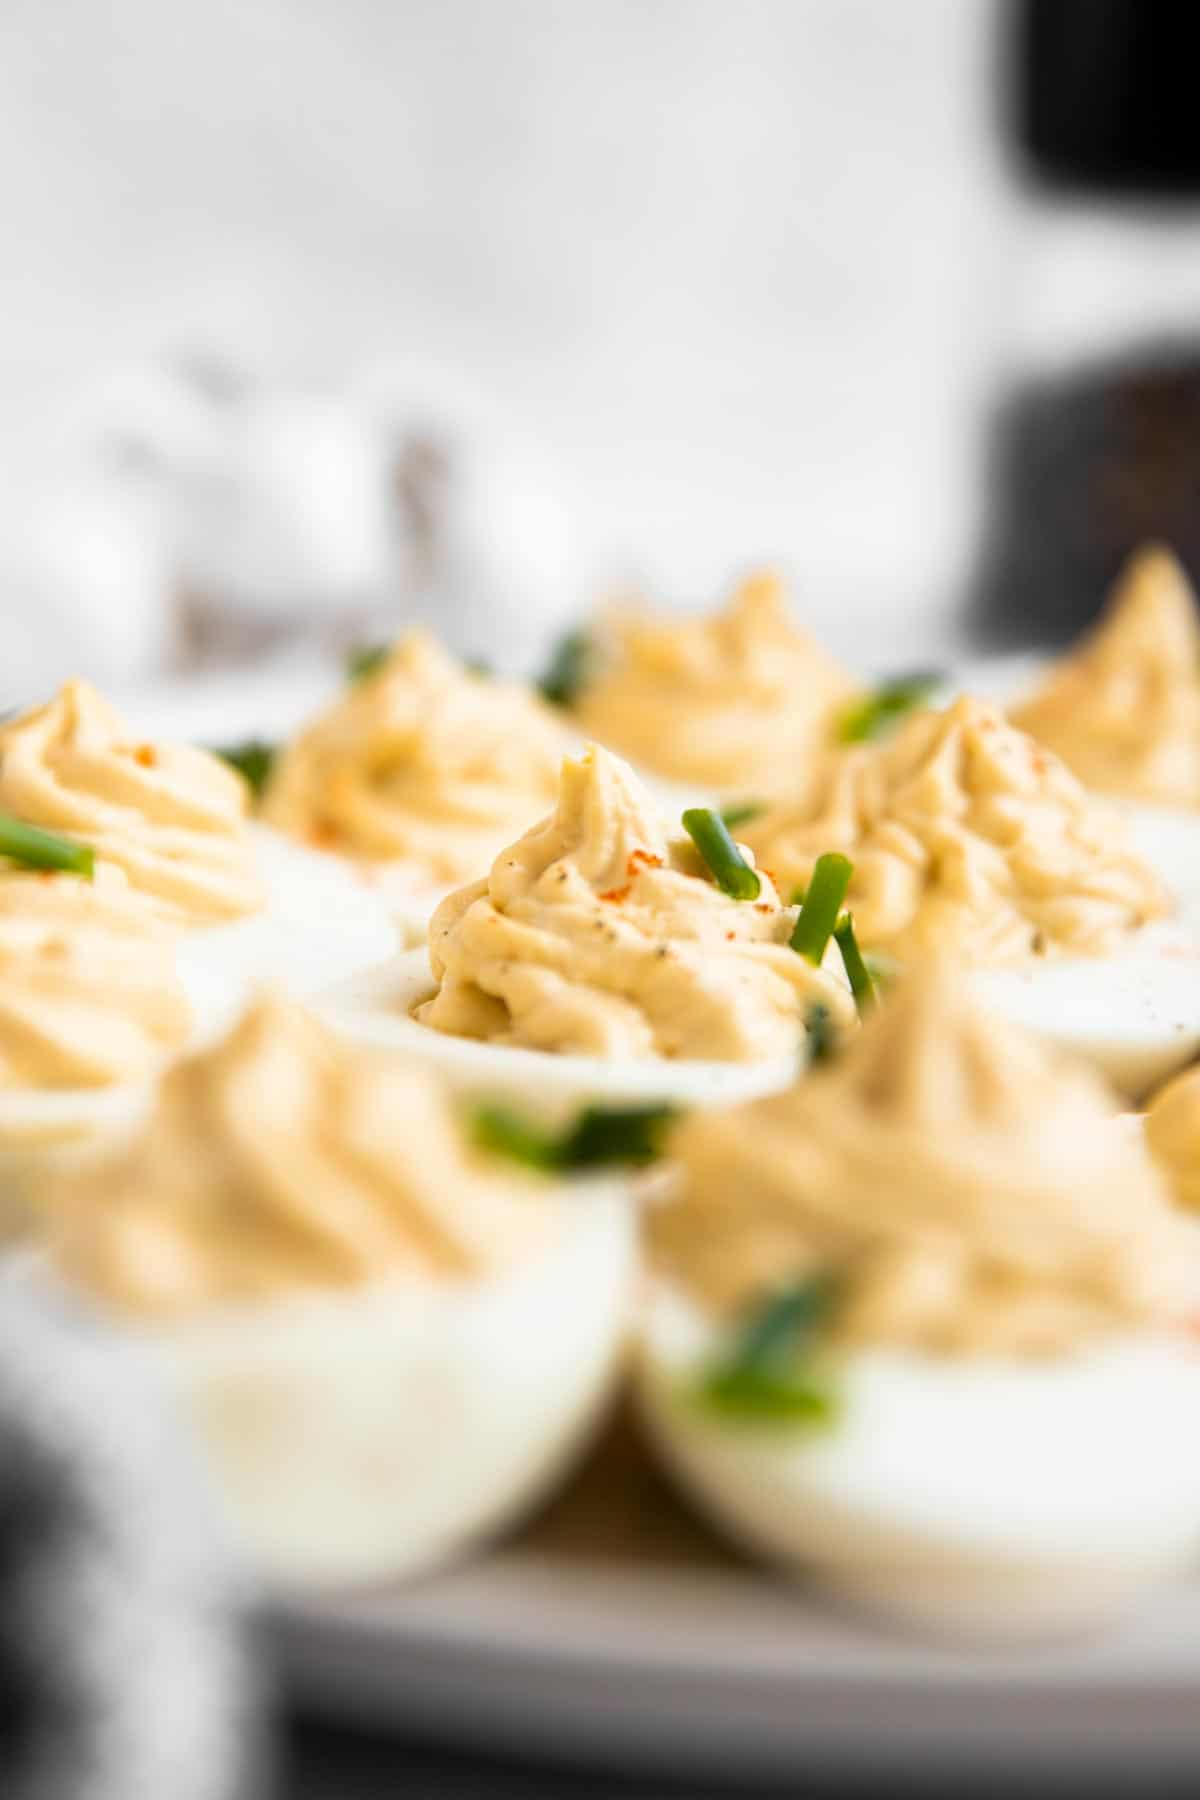 selective focus photo of a plate with deviled eggs